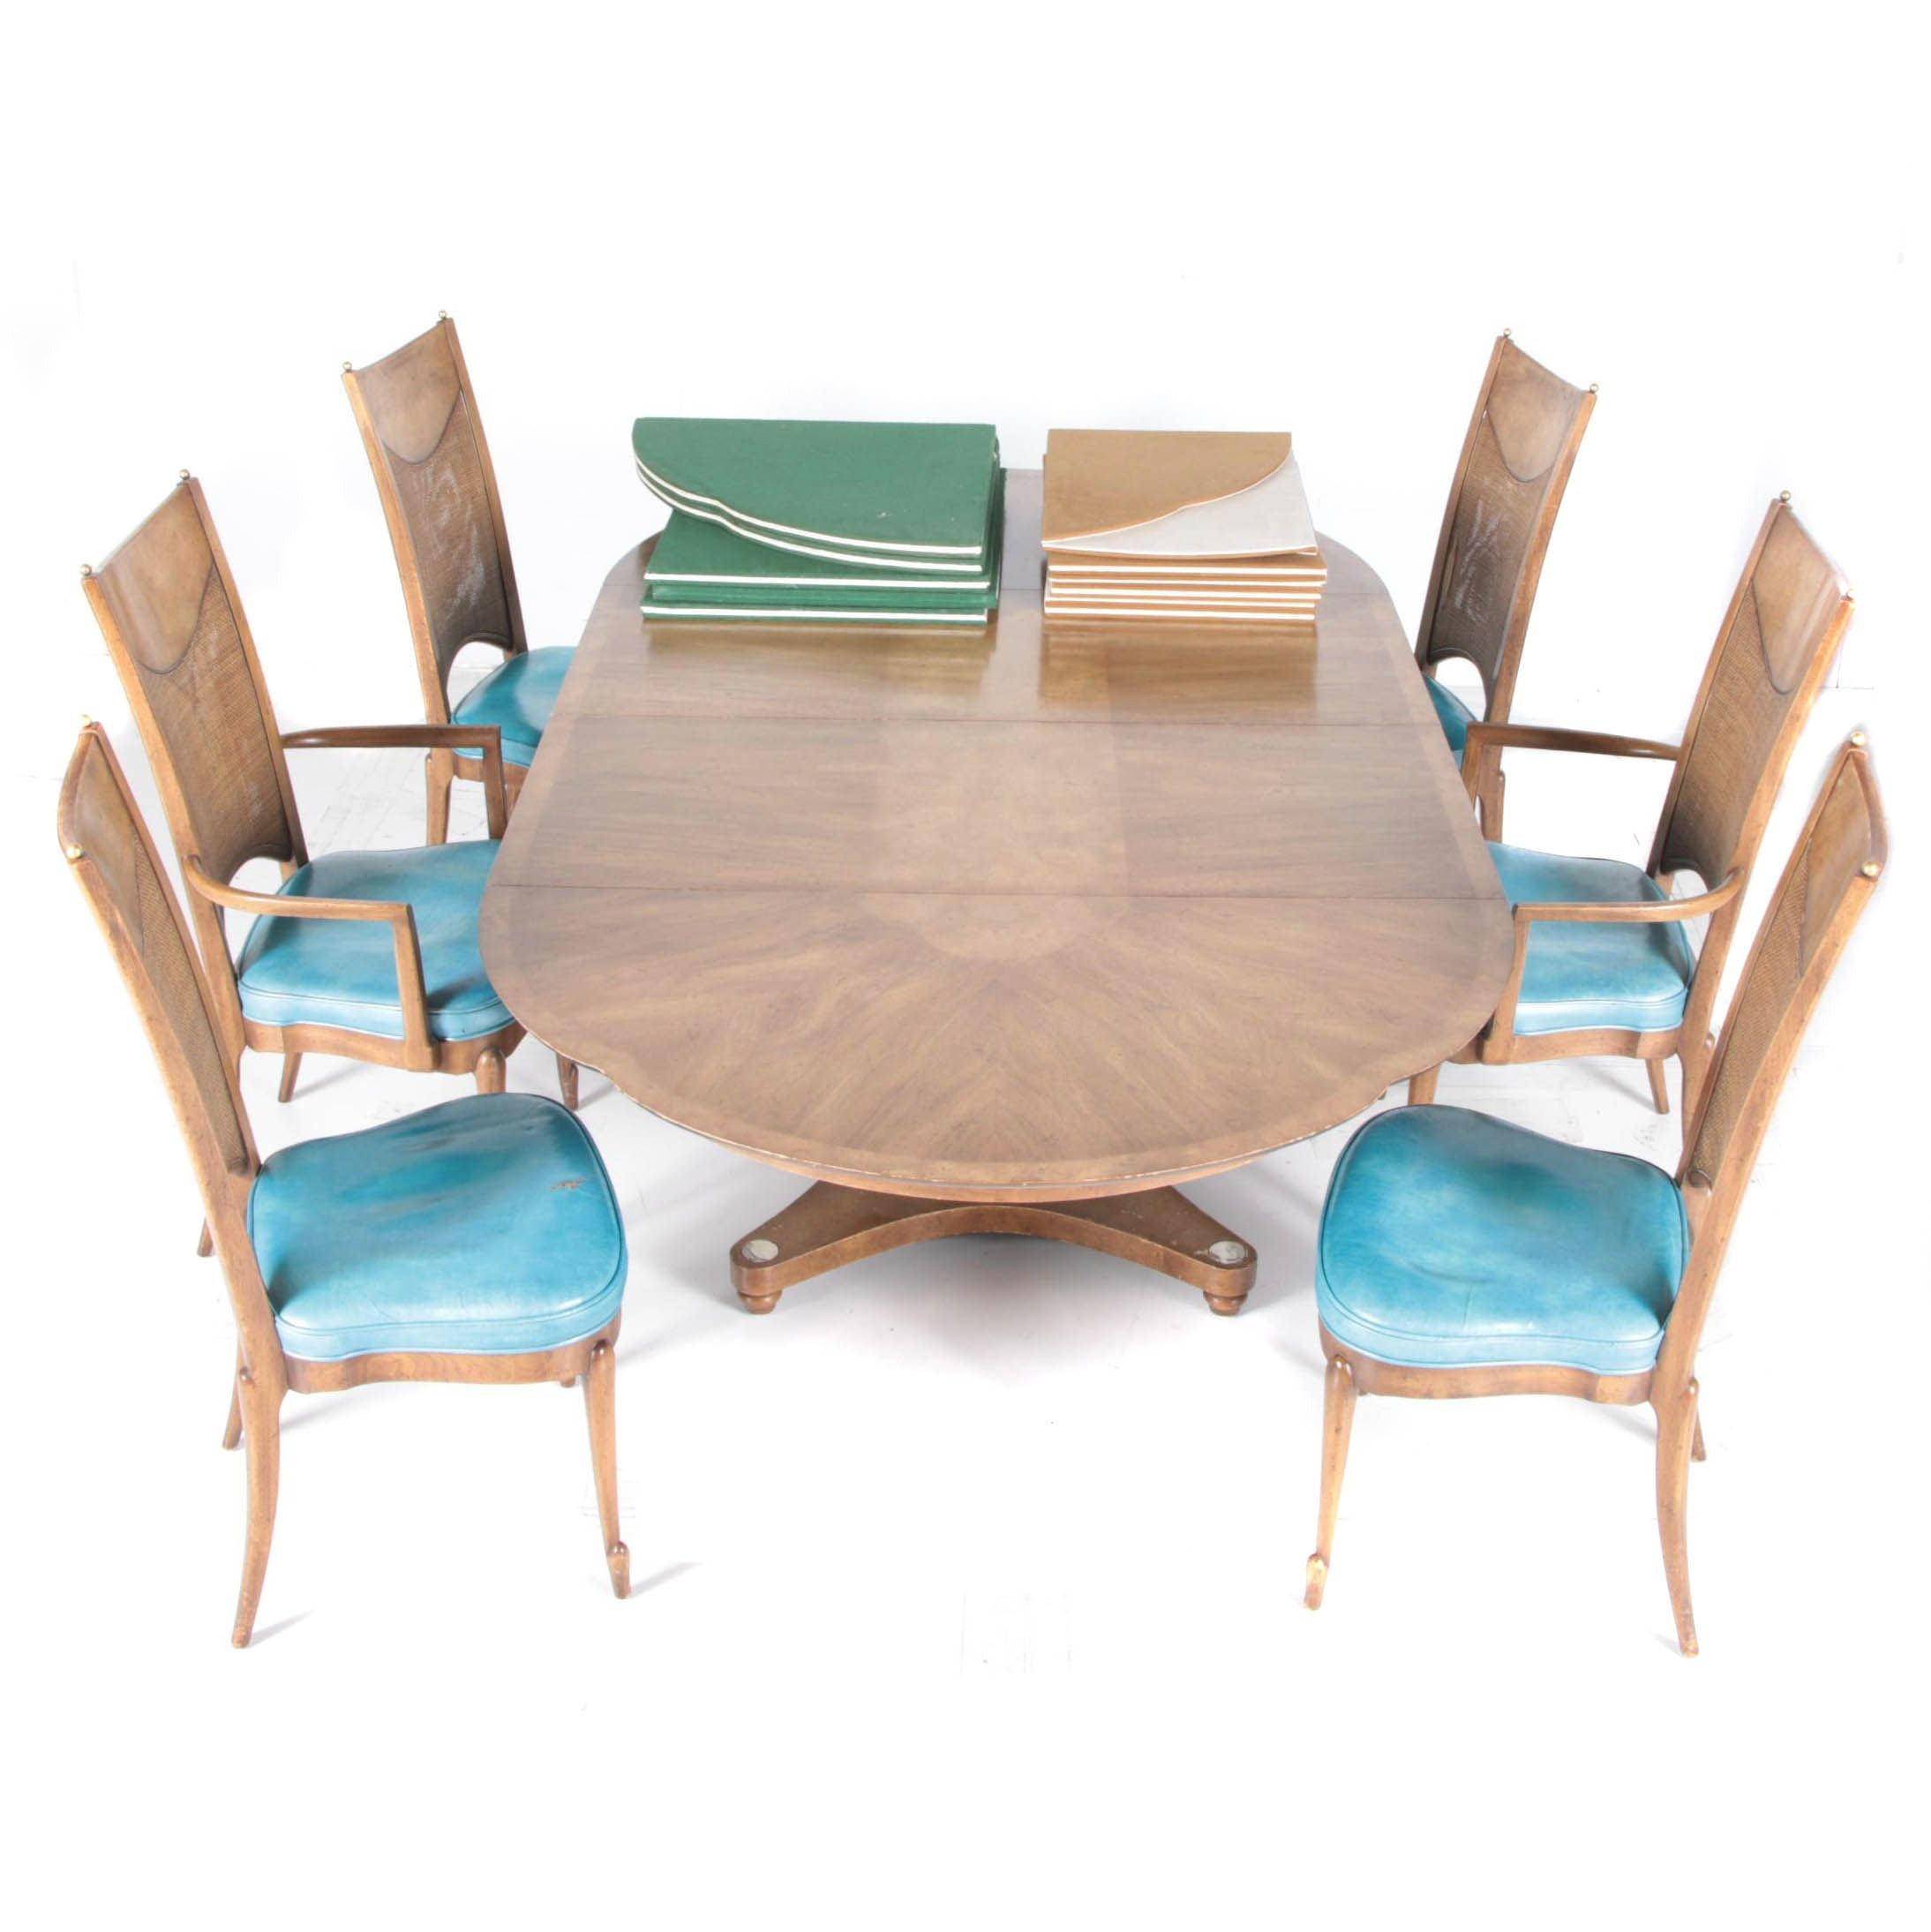 Table with Chairs by Mastercraft Furniture Company